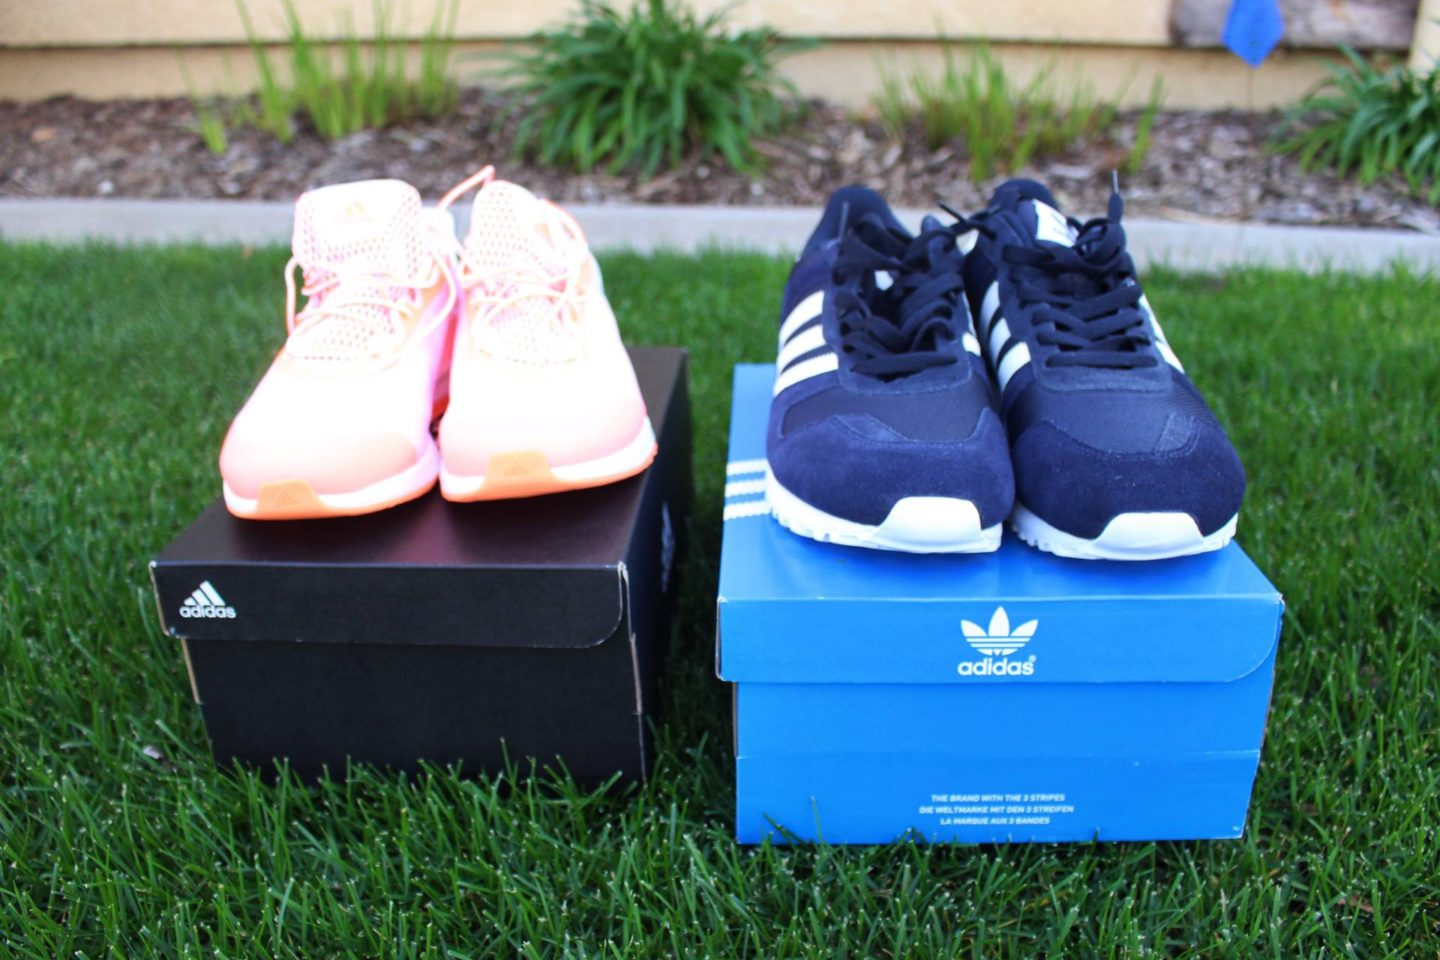 simon-premium-outlets-more-than-pink-campaign- addidas